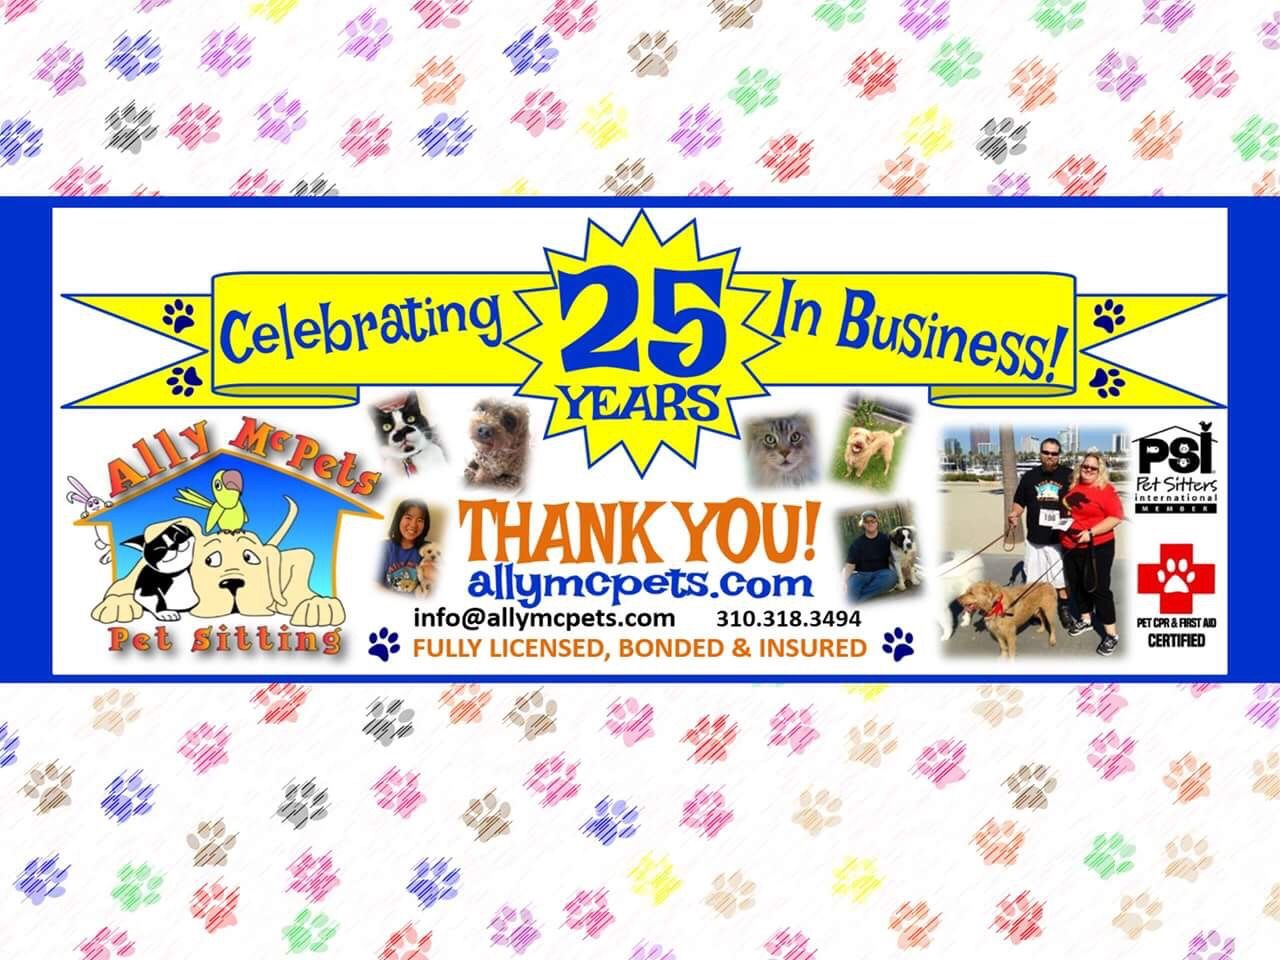 Ally McPets Pet Sitting and Dog Walking was established in